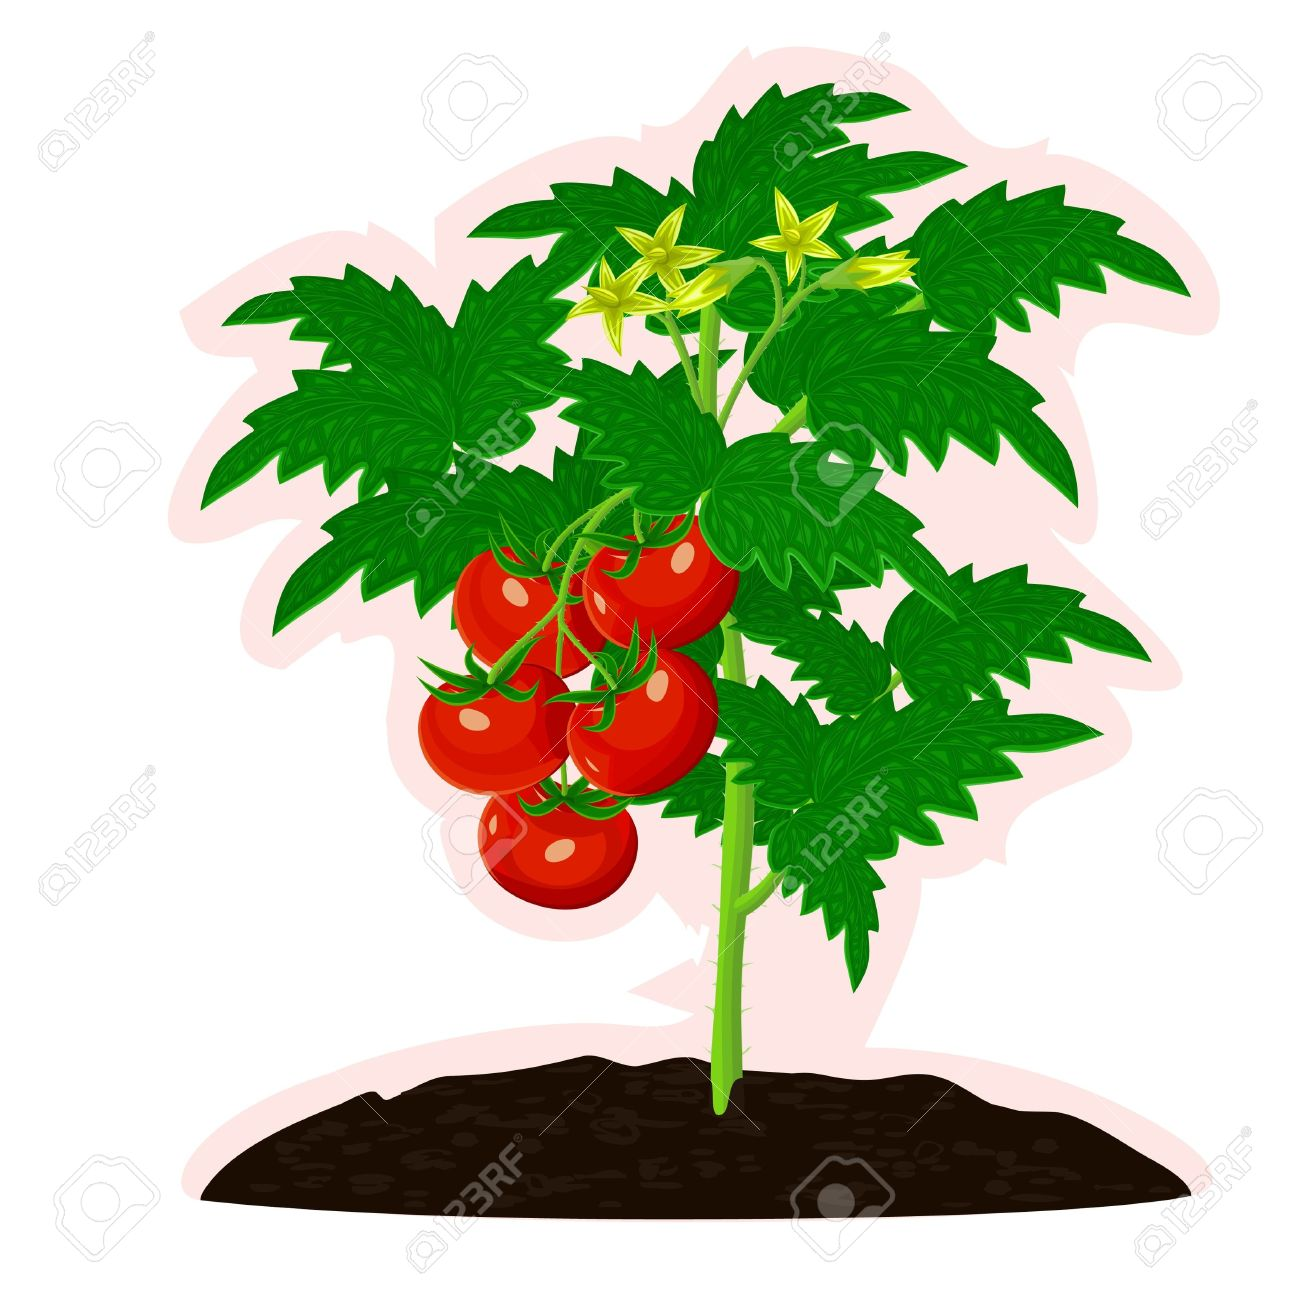 Tomato Bush With Fruits And Flowers Royalty Free Cliparts, Vectors.